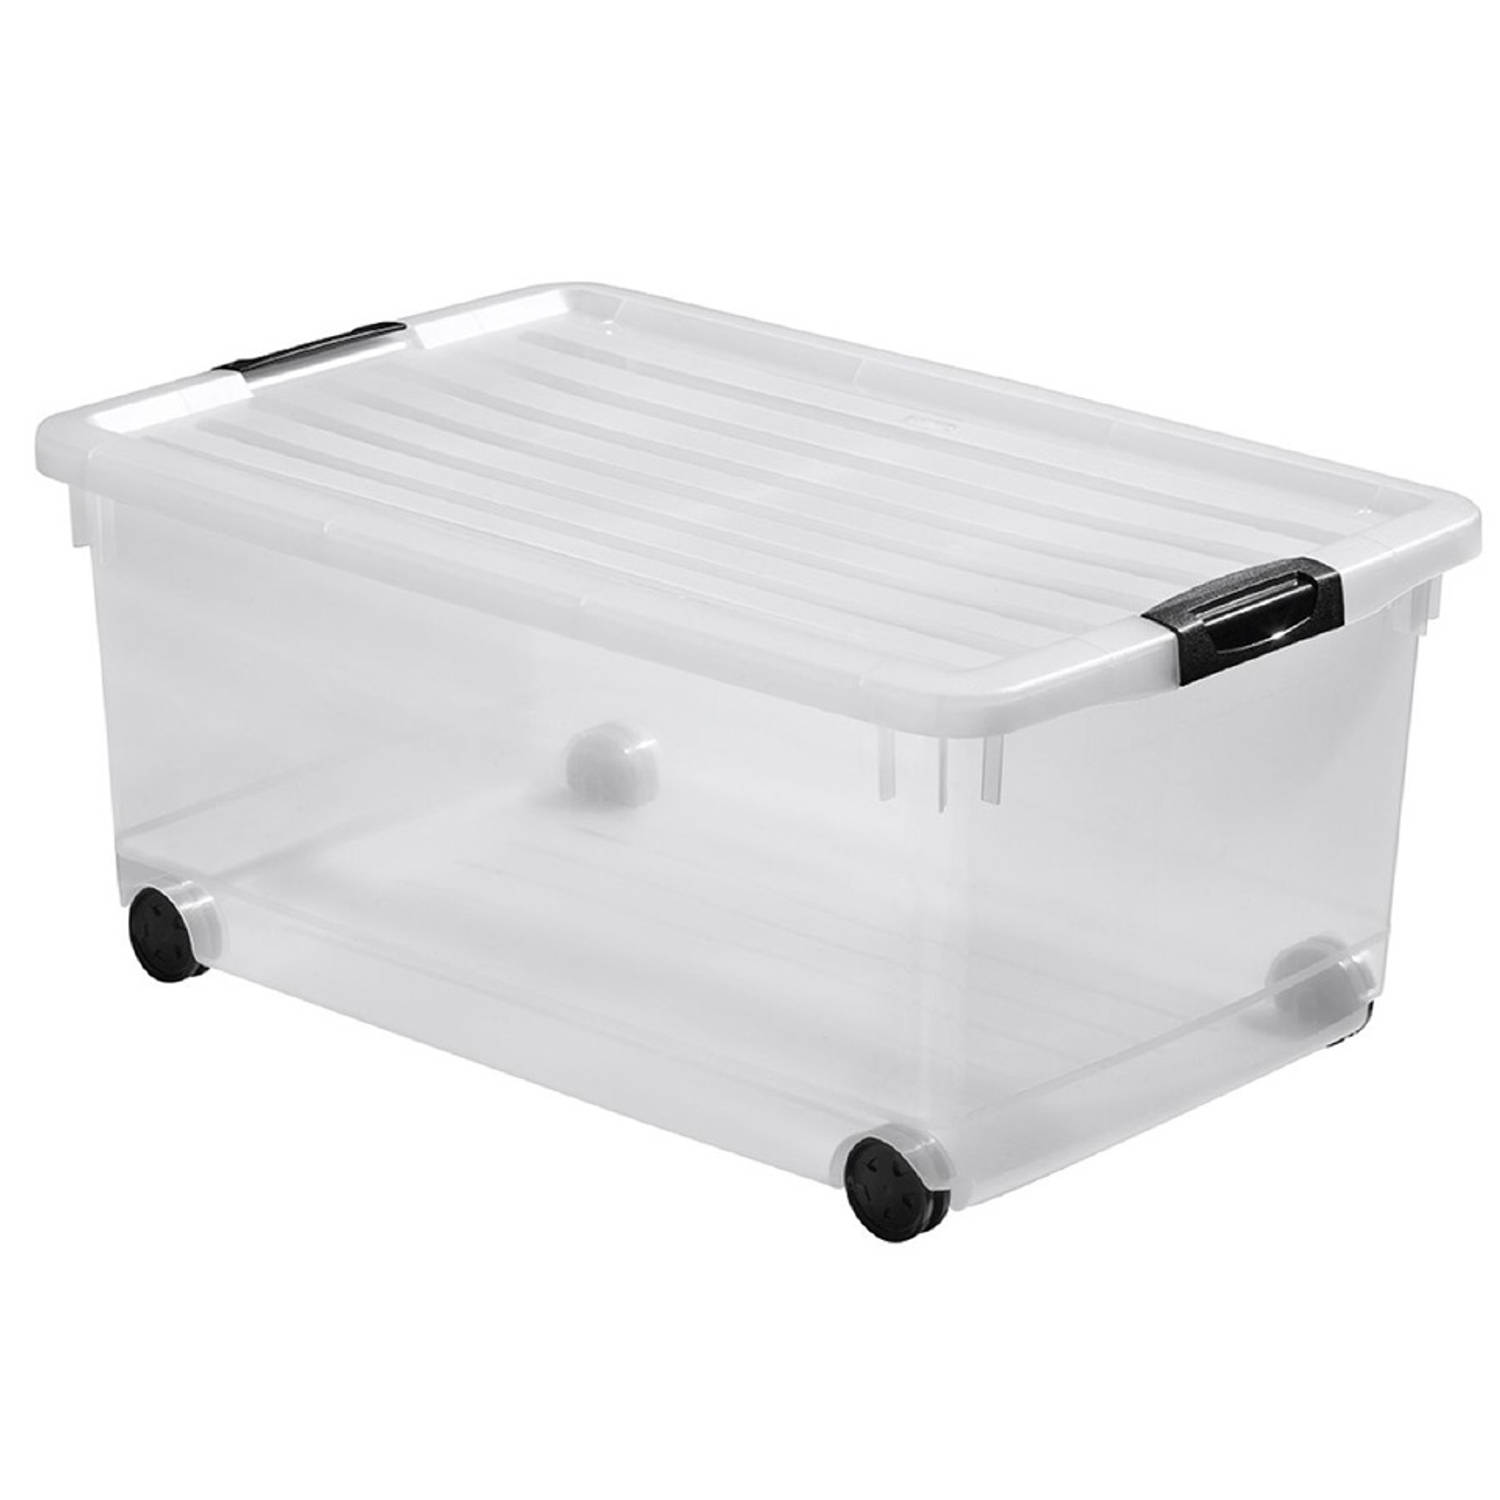 Curver Click'n Fit Multiboxx opbergbox 45 liter transparant